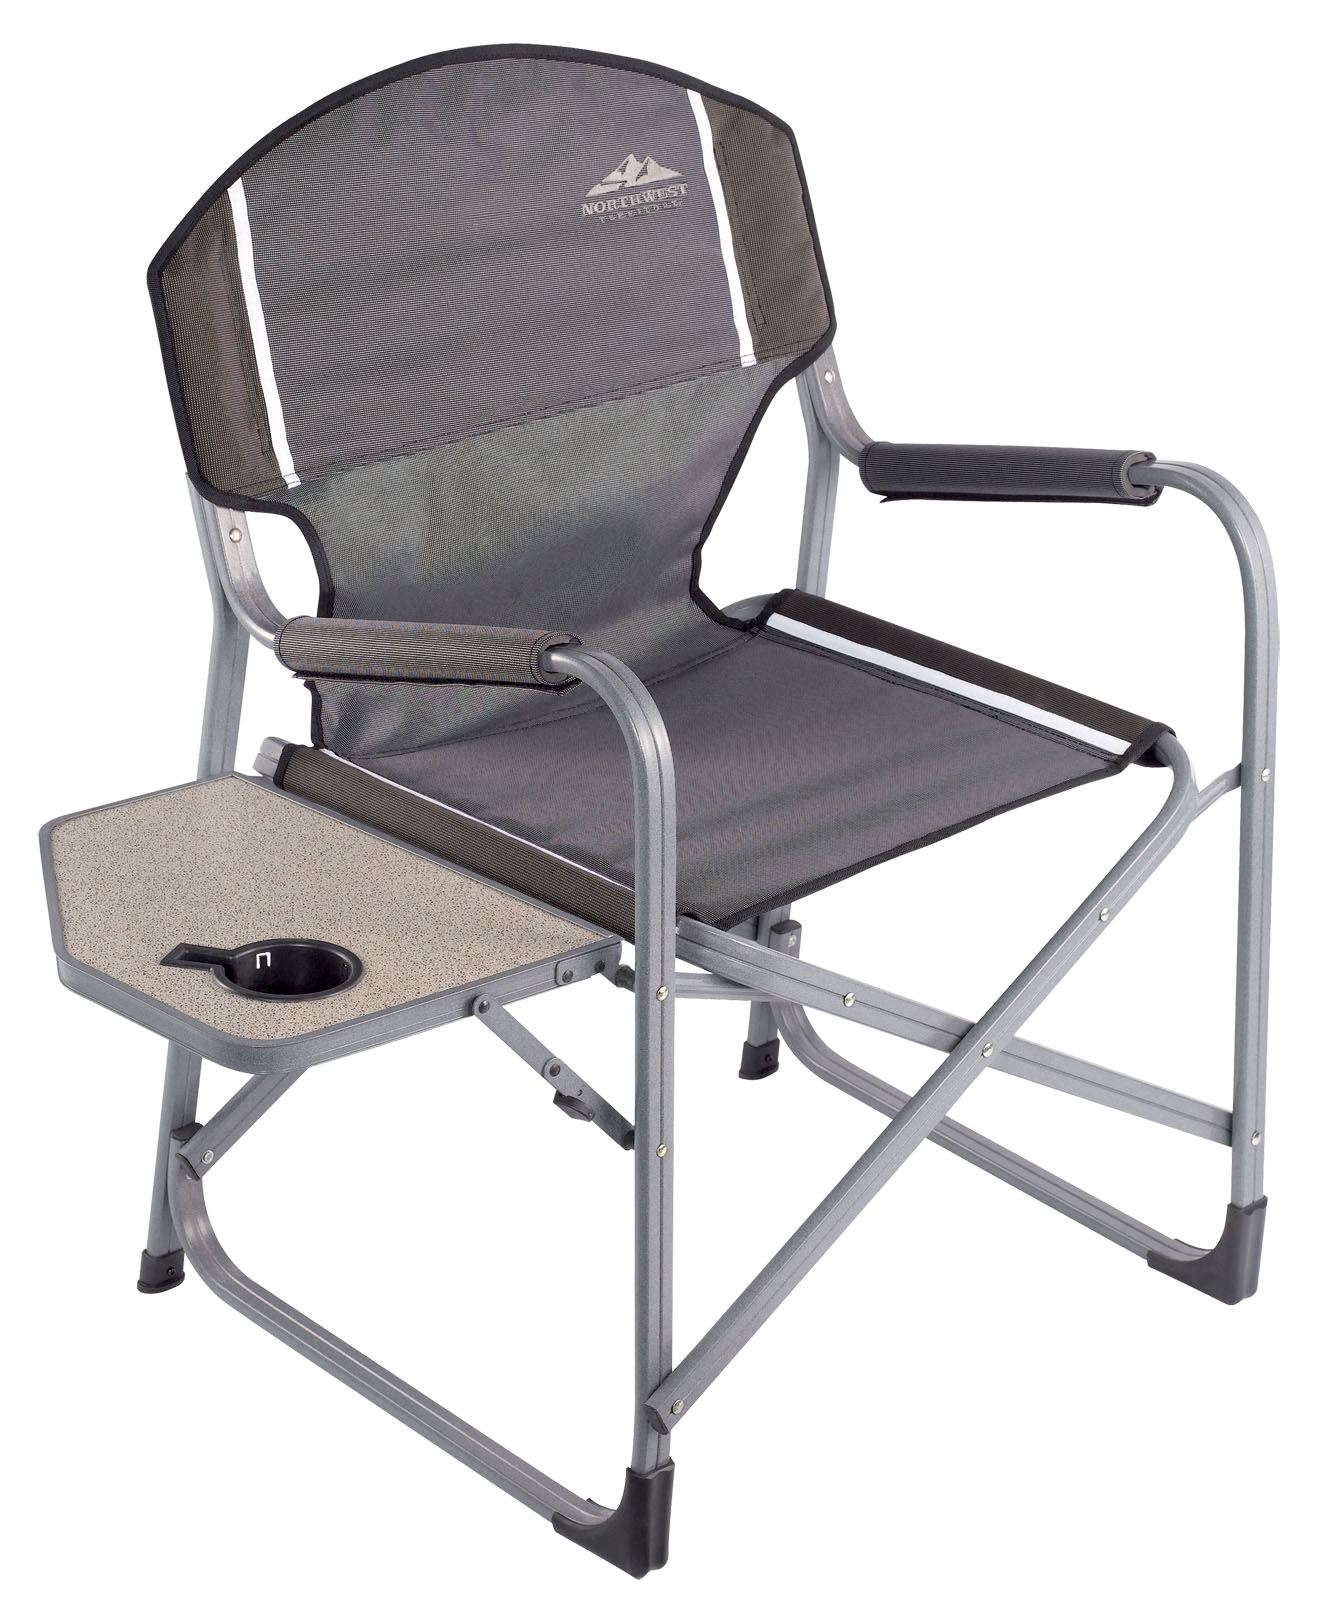 Northwest Territory Directors Chair with FoldUp Side Table  Shop Your Way Online Shopping